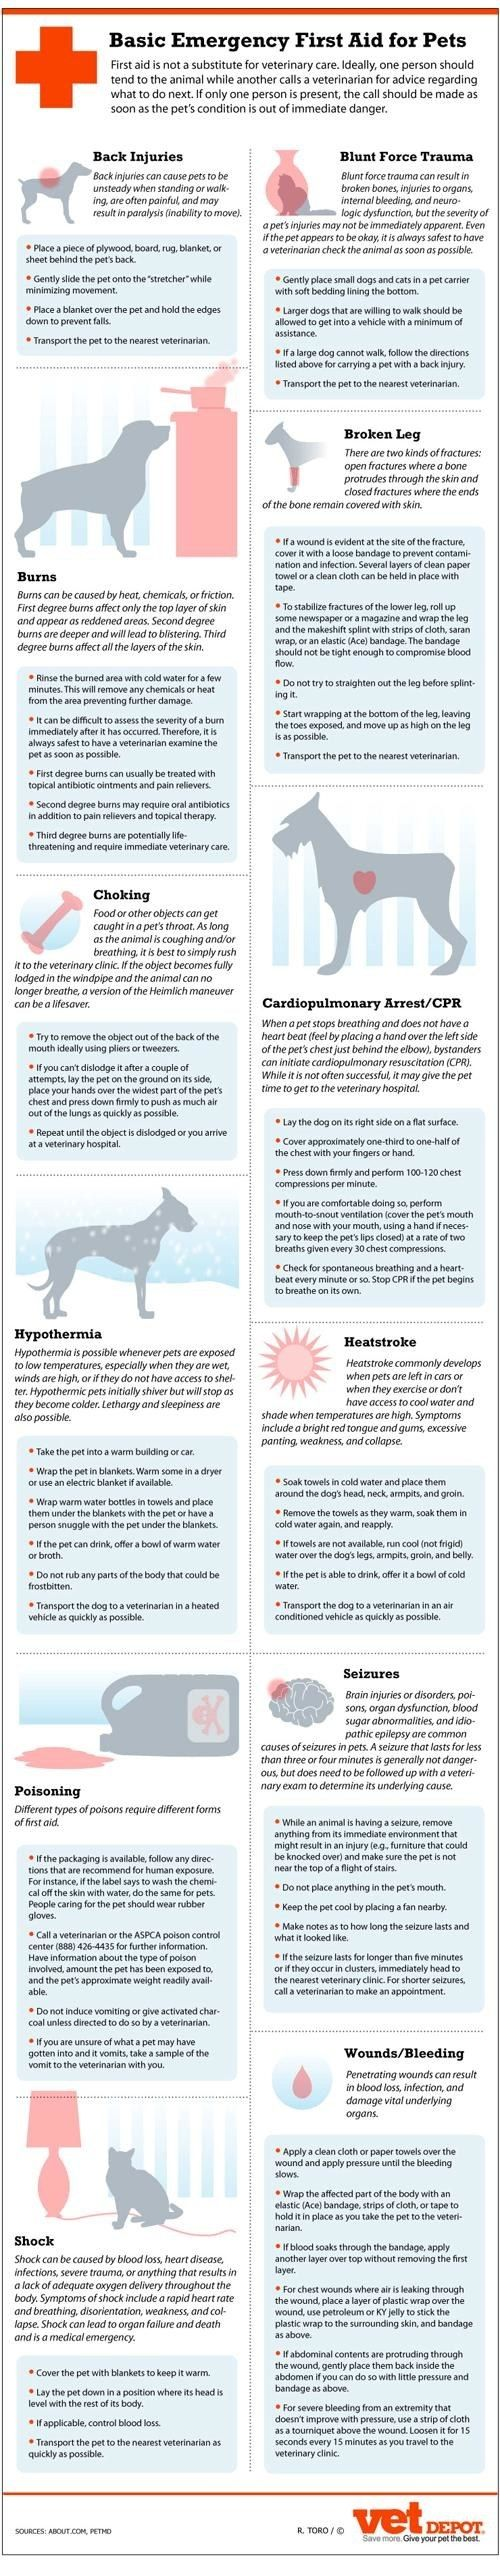 Basic Emergency First Aid For Pets | Community Post: 30 Dog Charts Every Dog Lover Should Have